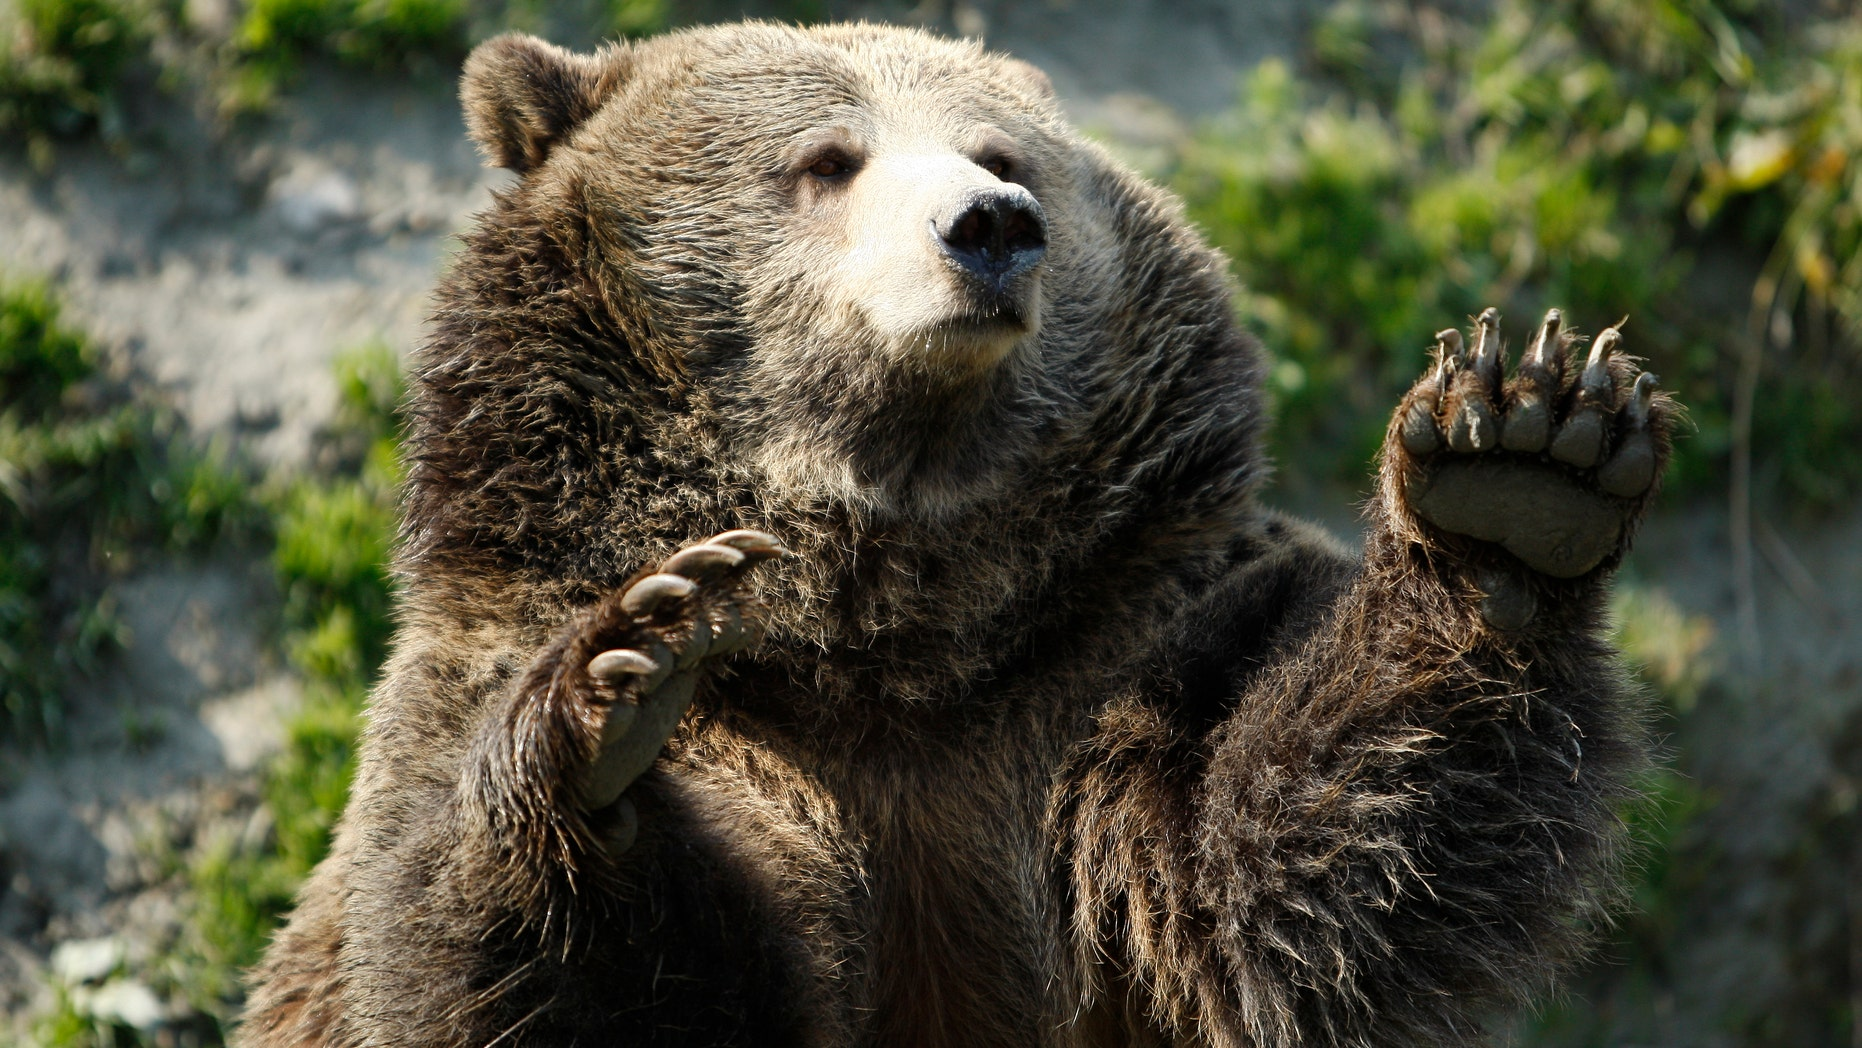 It's not known whether the man was mauled by a grizzly bear, pictured above, or a black bear. State Fish, Wildlife and Parks wardens are investigating the attack, which left the man seriously injured.